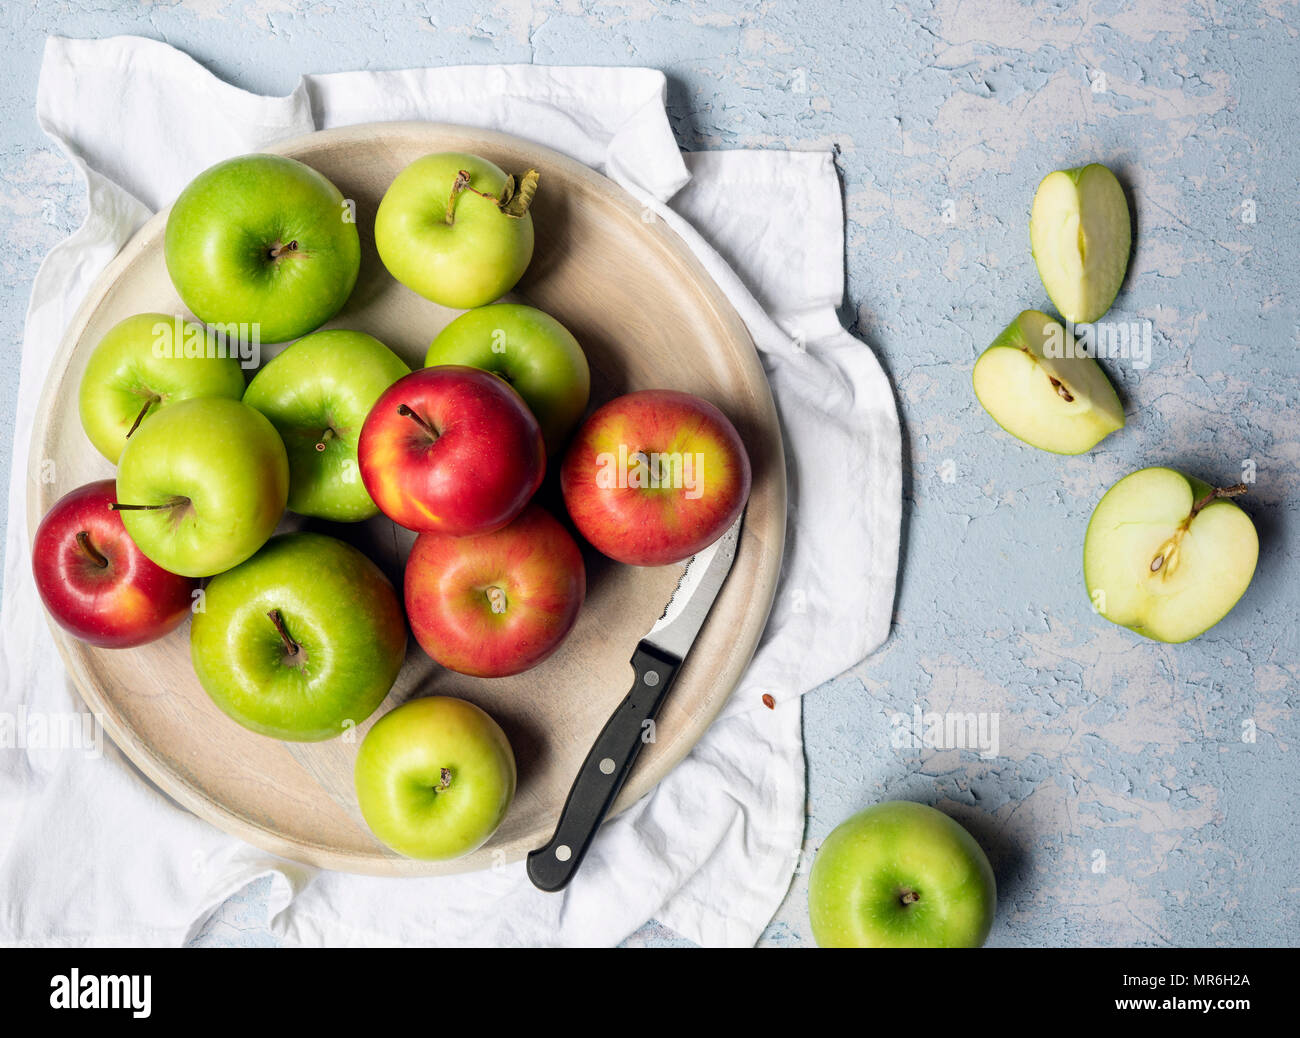 Green cooking apples and red eating apples with a knife on a round wooden board. - Stock Image